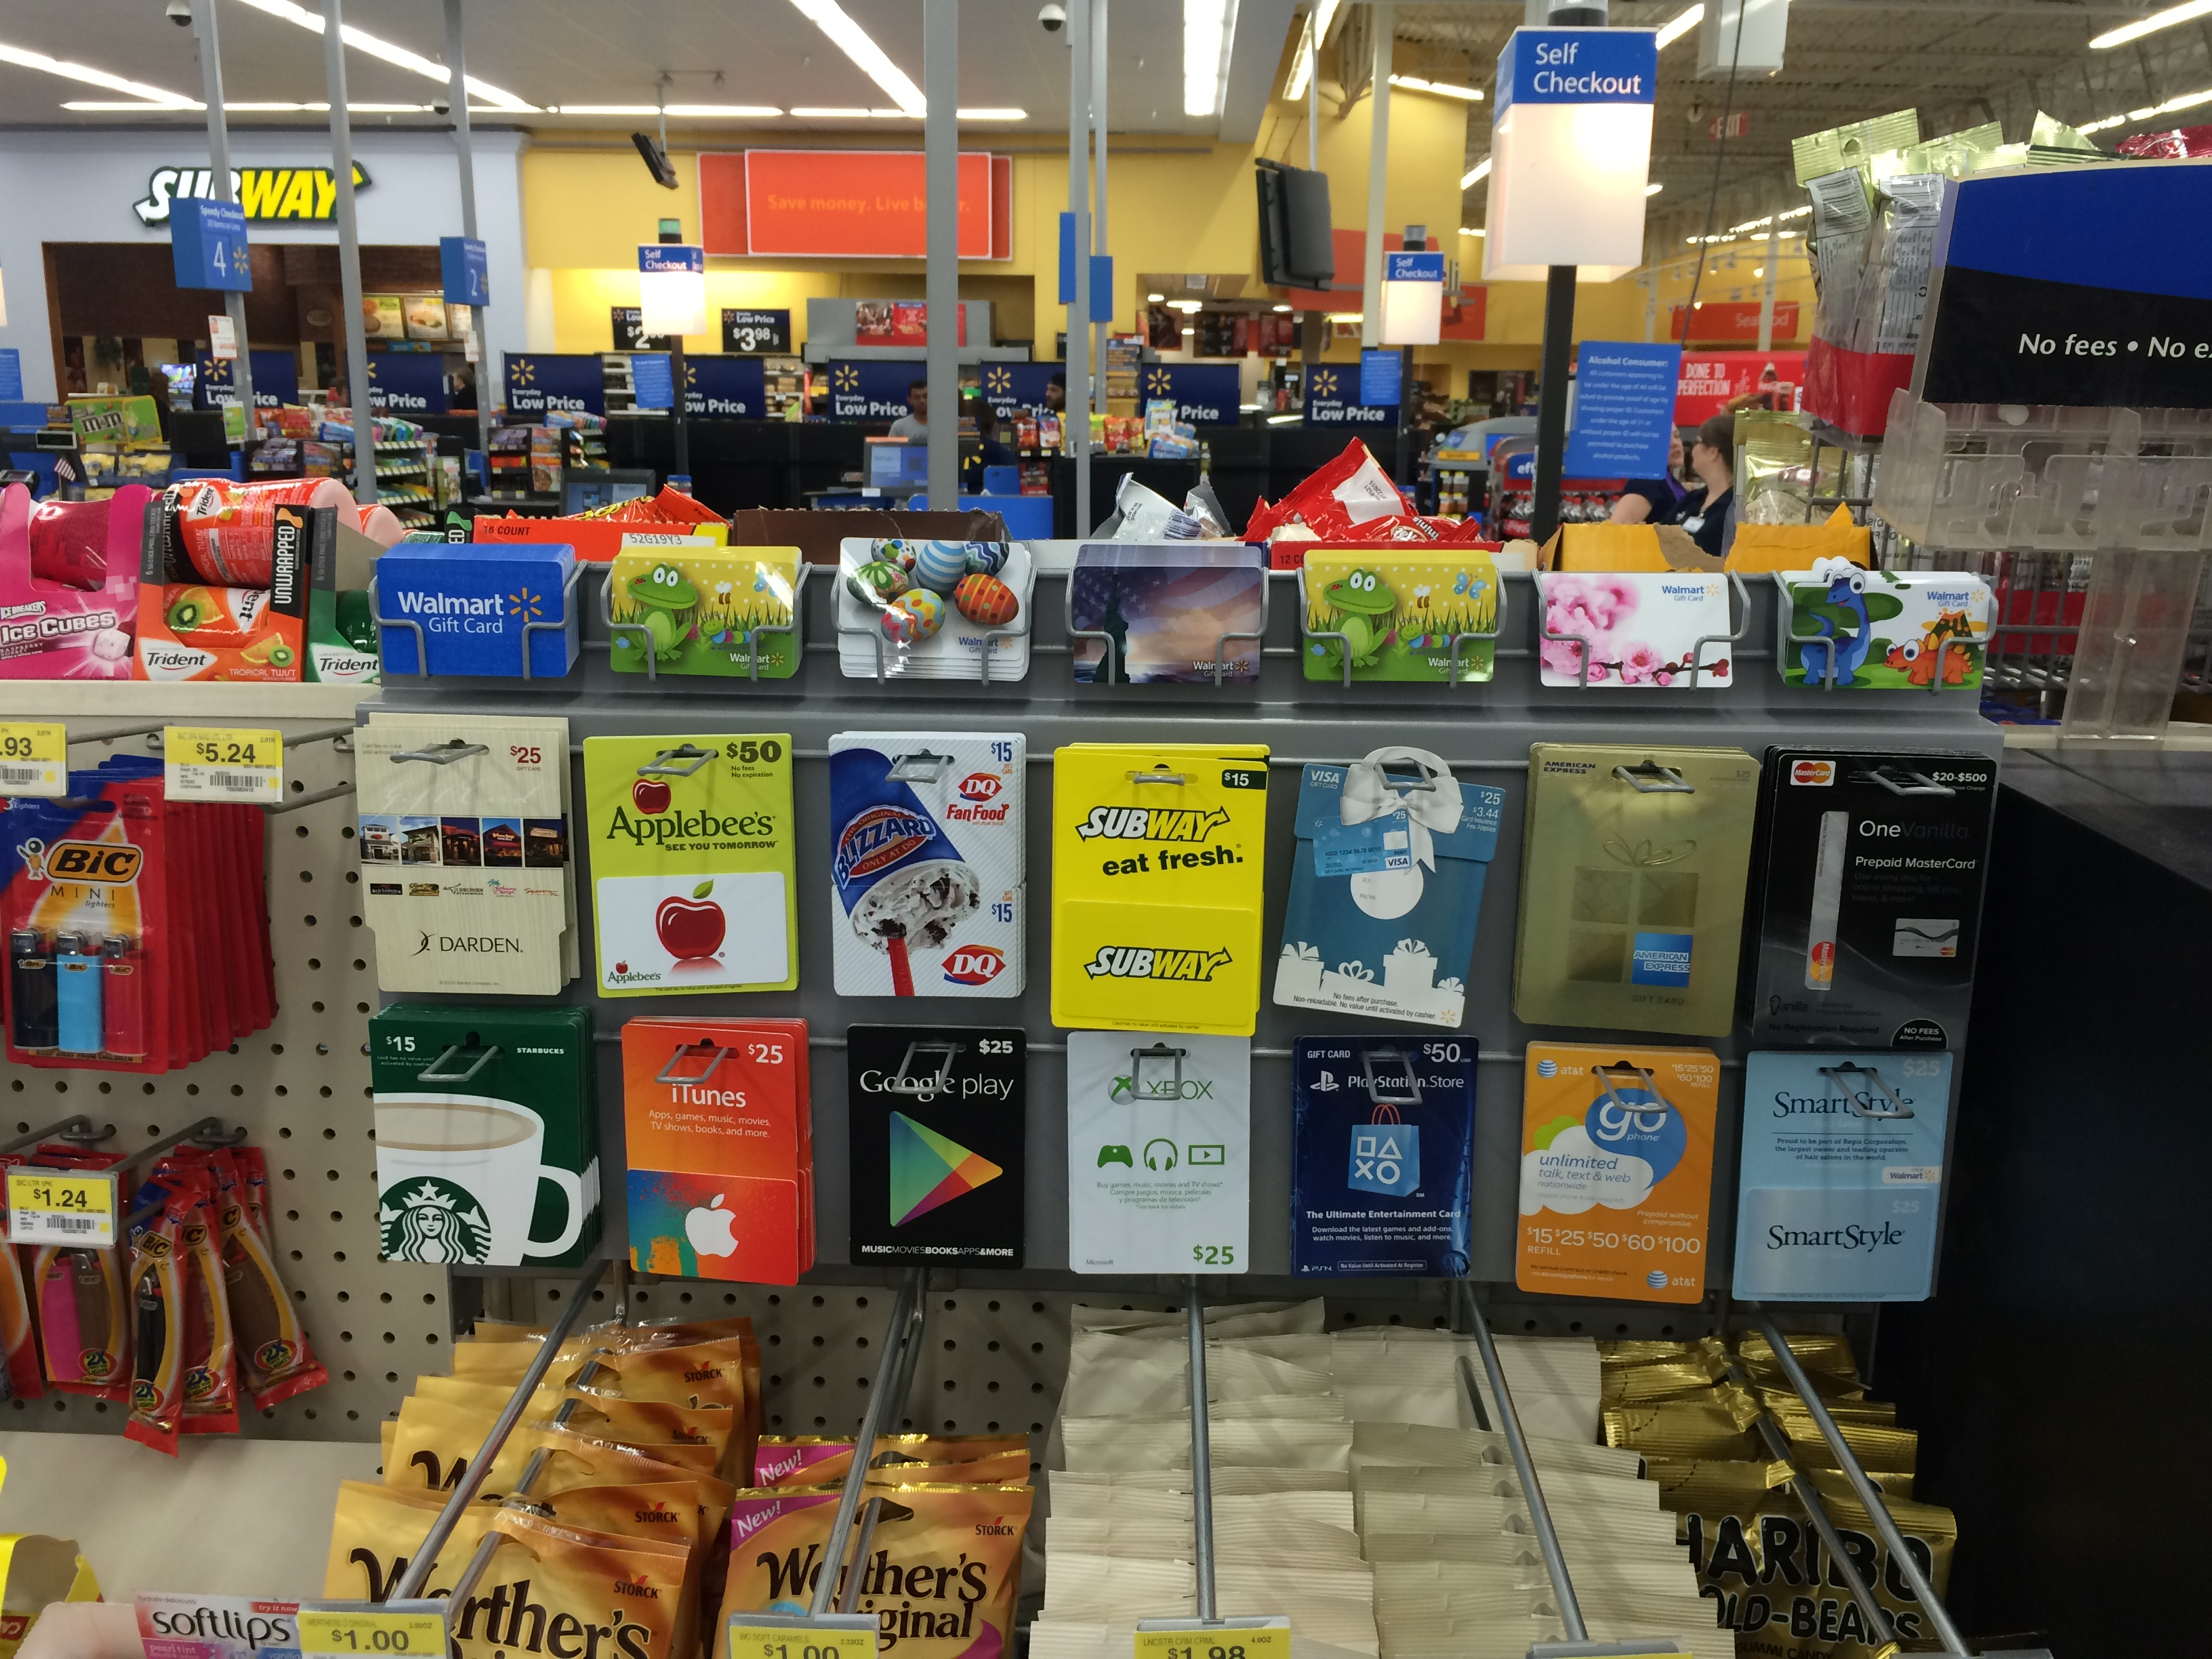 Walmart Gift Card Checkout Display Polymth Product Leadership